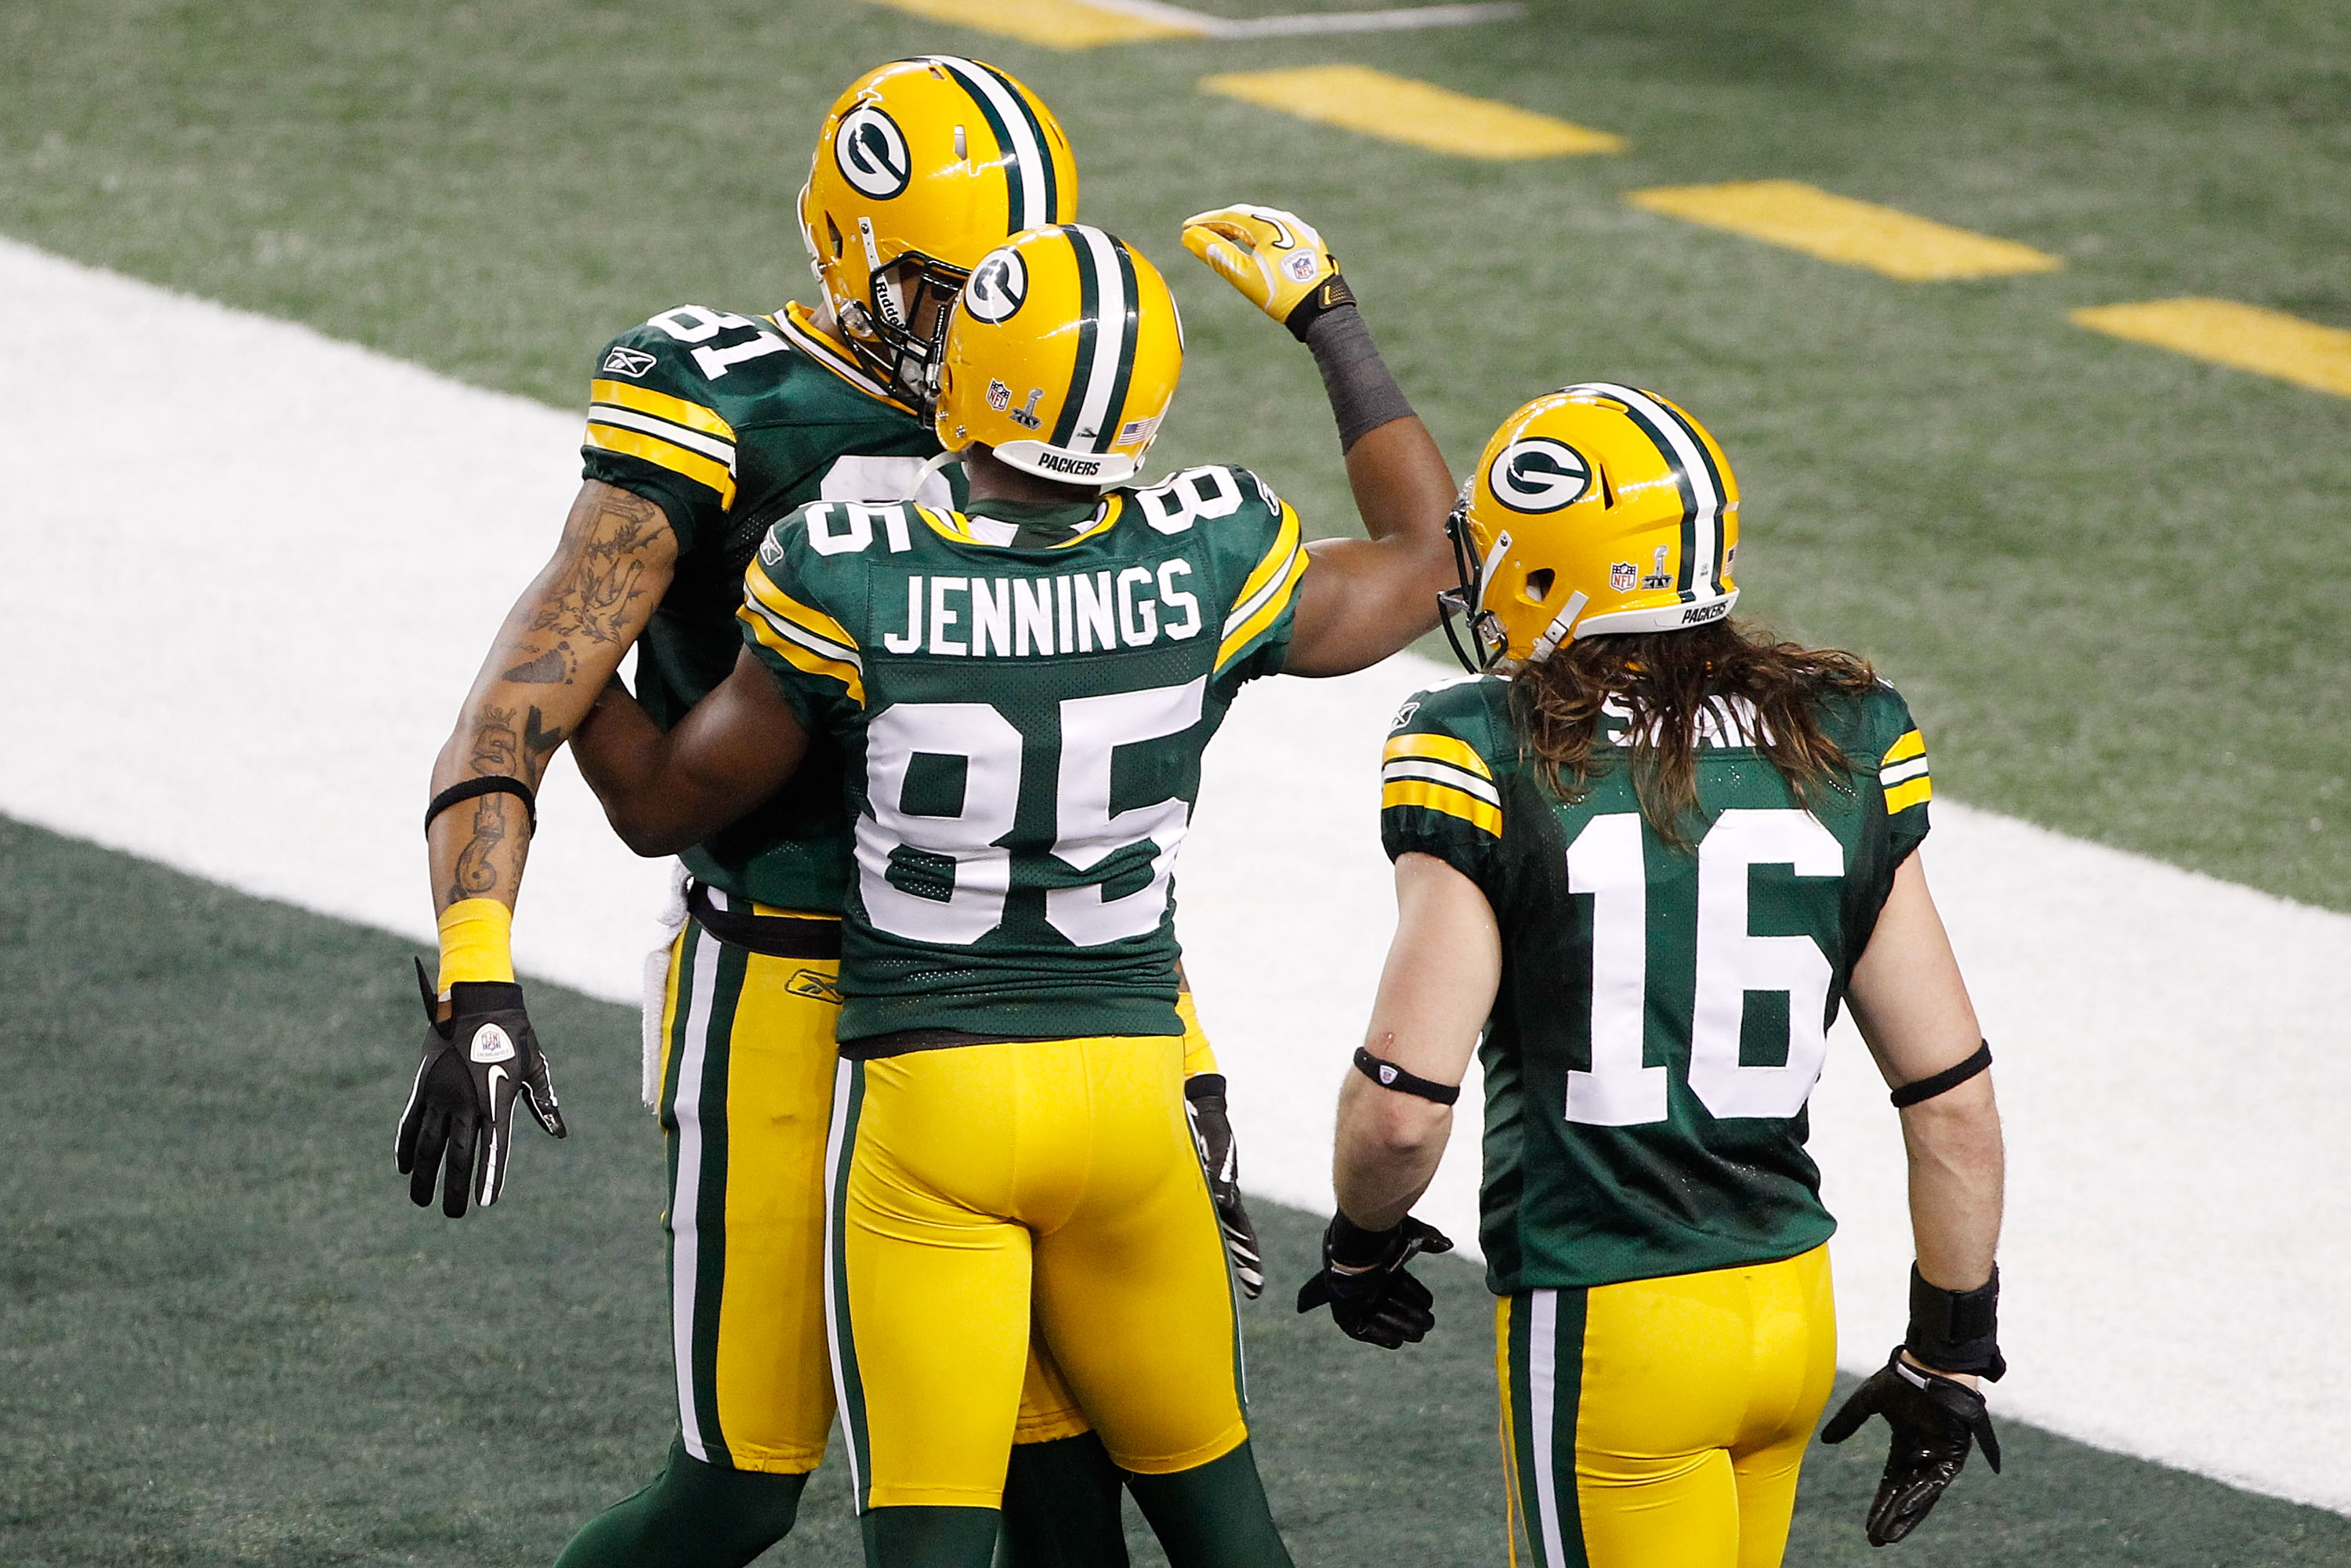 ARLINGTON, TX - FEBRUARY 06:  Greg Jennings #85 of the Green Bay Packers celebrates a fourth quarter touchdown against the Pittsburgh Steelers with teammates Andrew Quarless #81 and Brett Swain #16 during Super Bowl XLV at Cowboys Stadium on February 6, 2